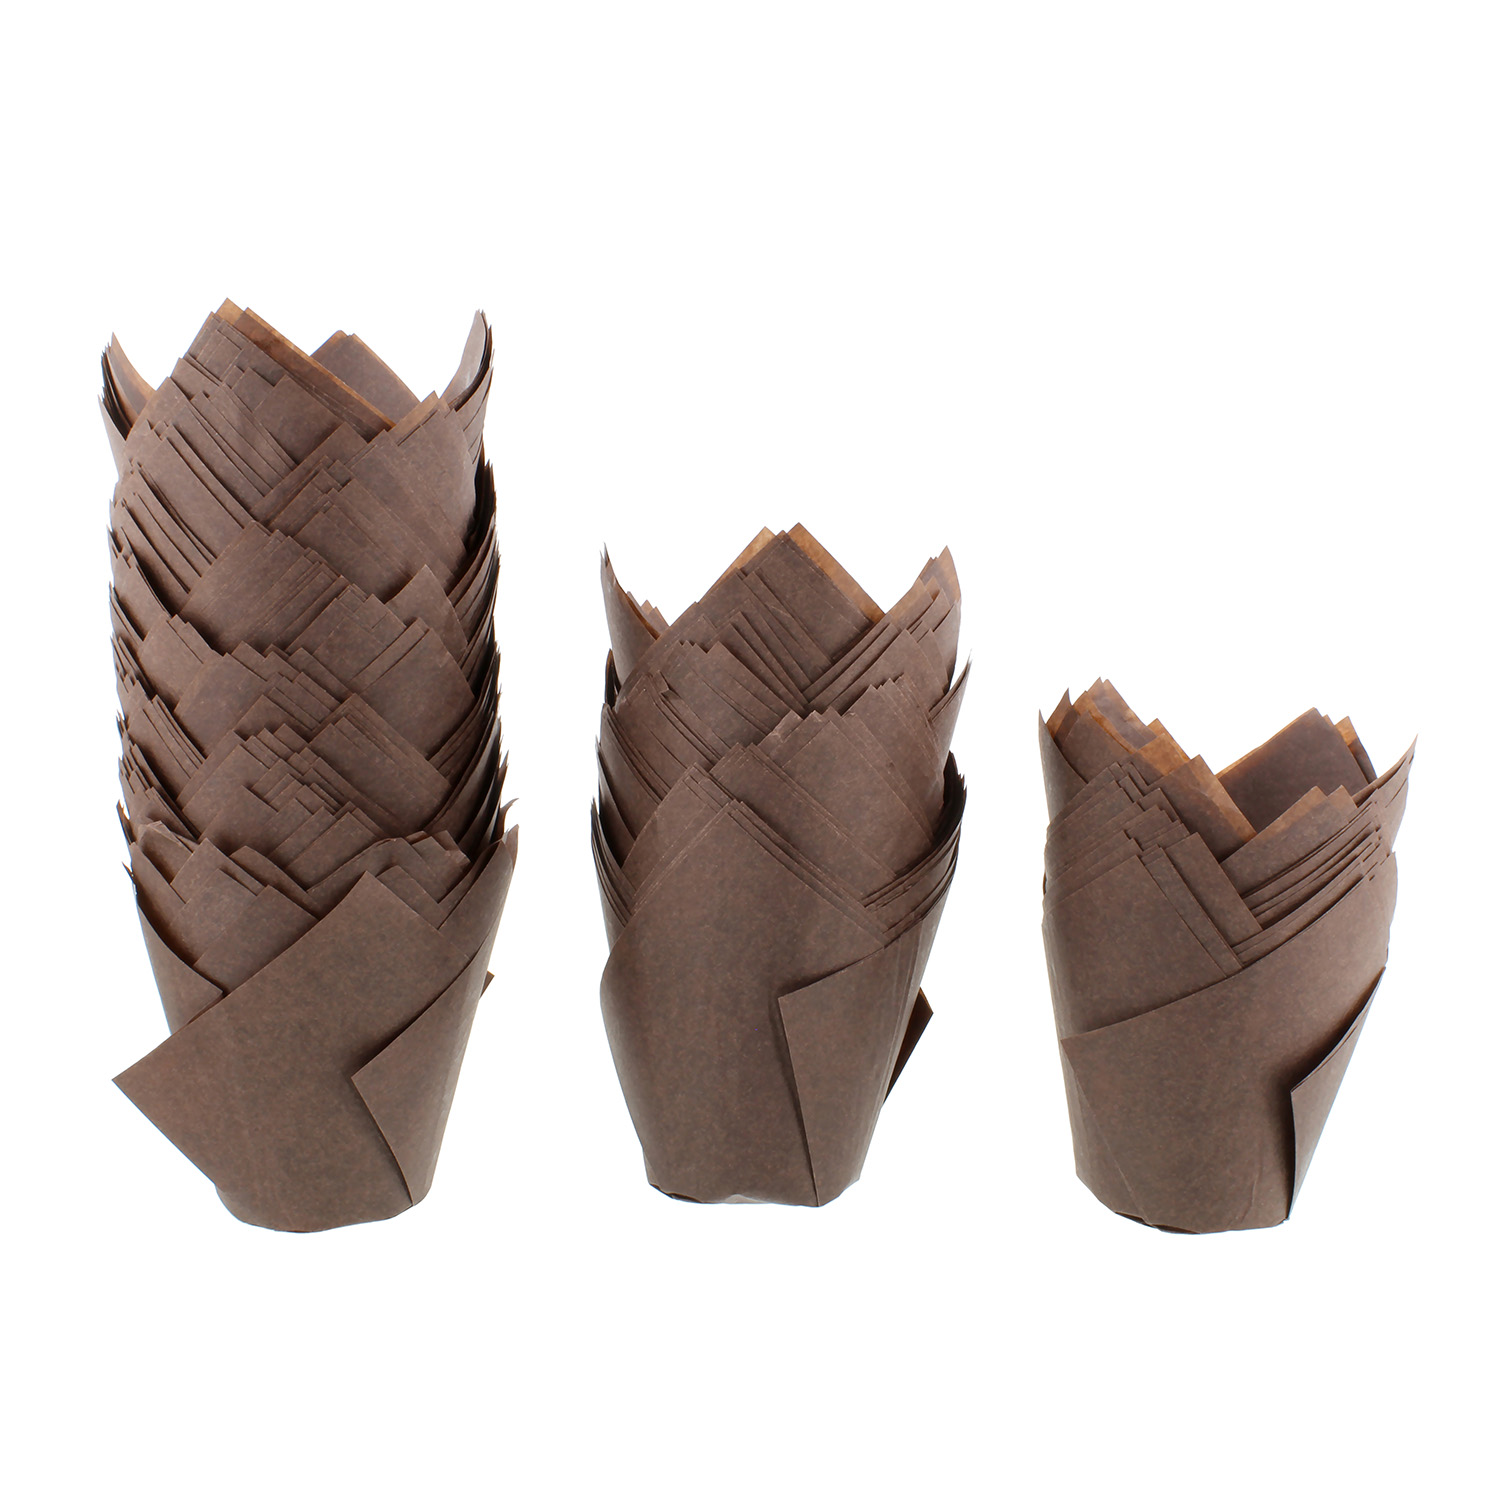 SpecialT | Tulip Cupcake Liners – 200 Ct Brown Tulip Style Muffin Cups Paper